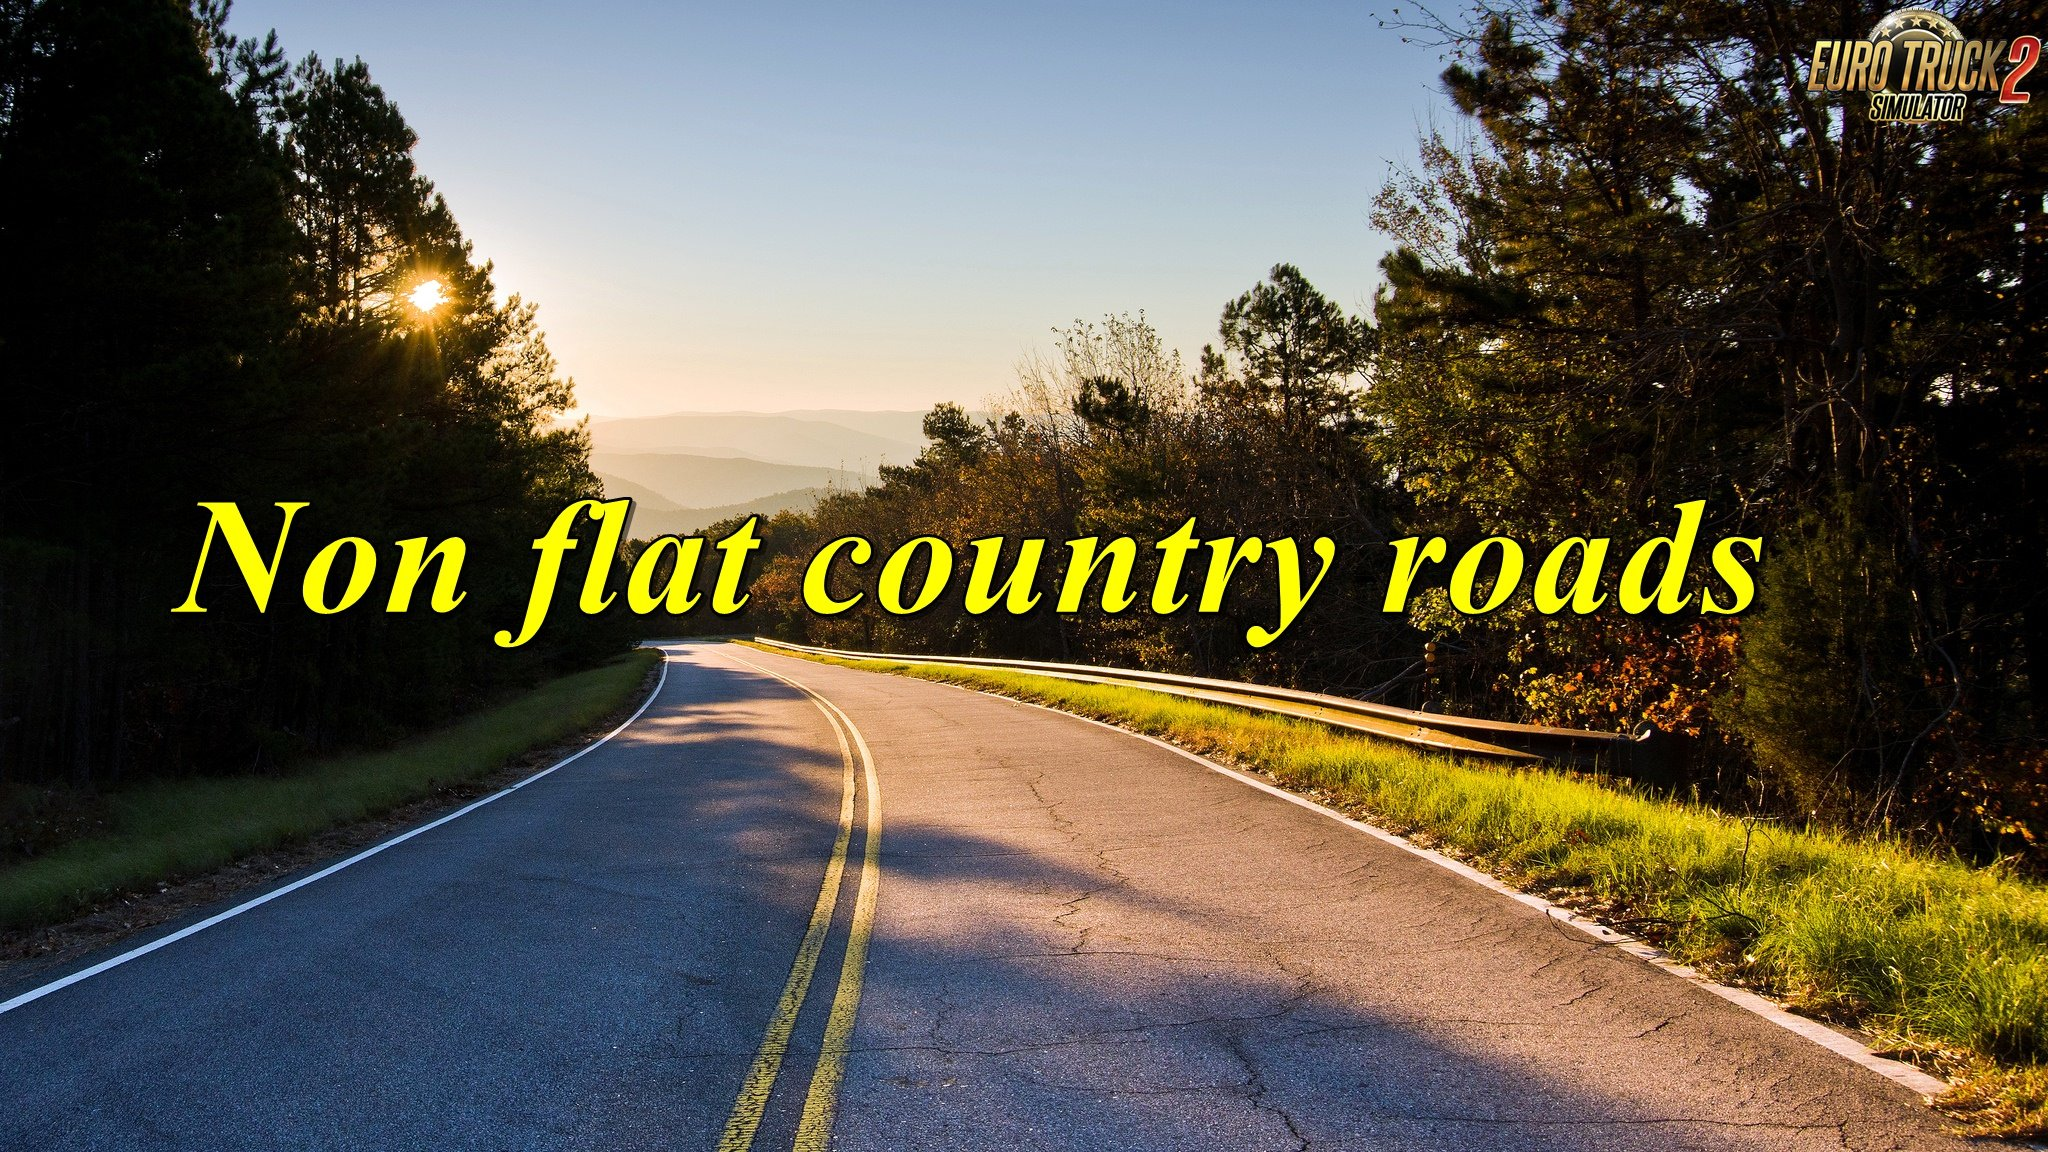 Non flat country roads v 0.2 by Todor Alin